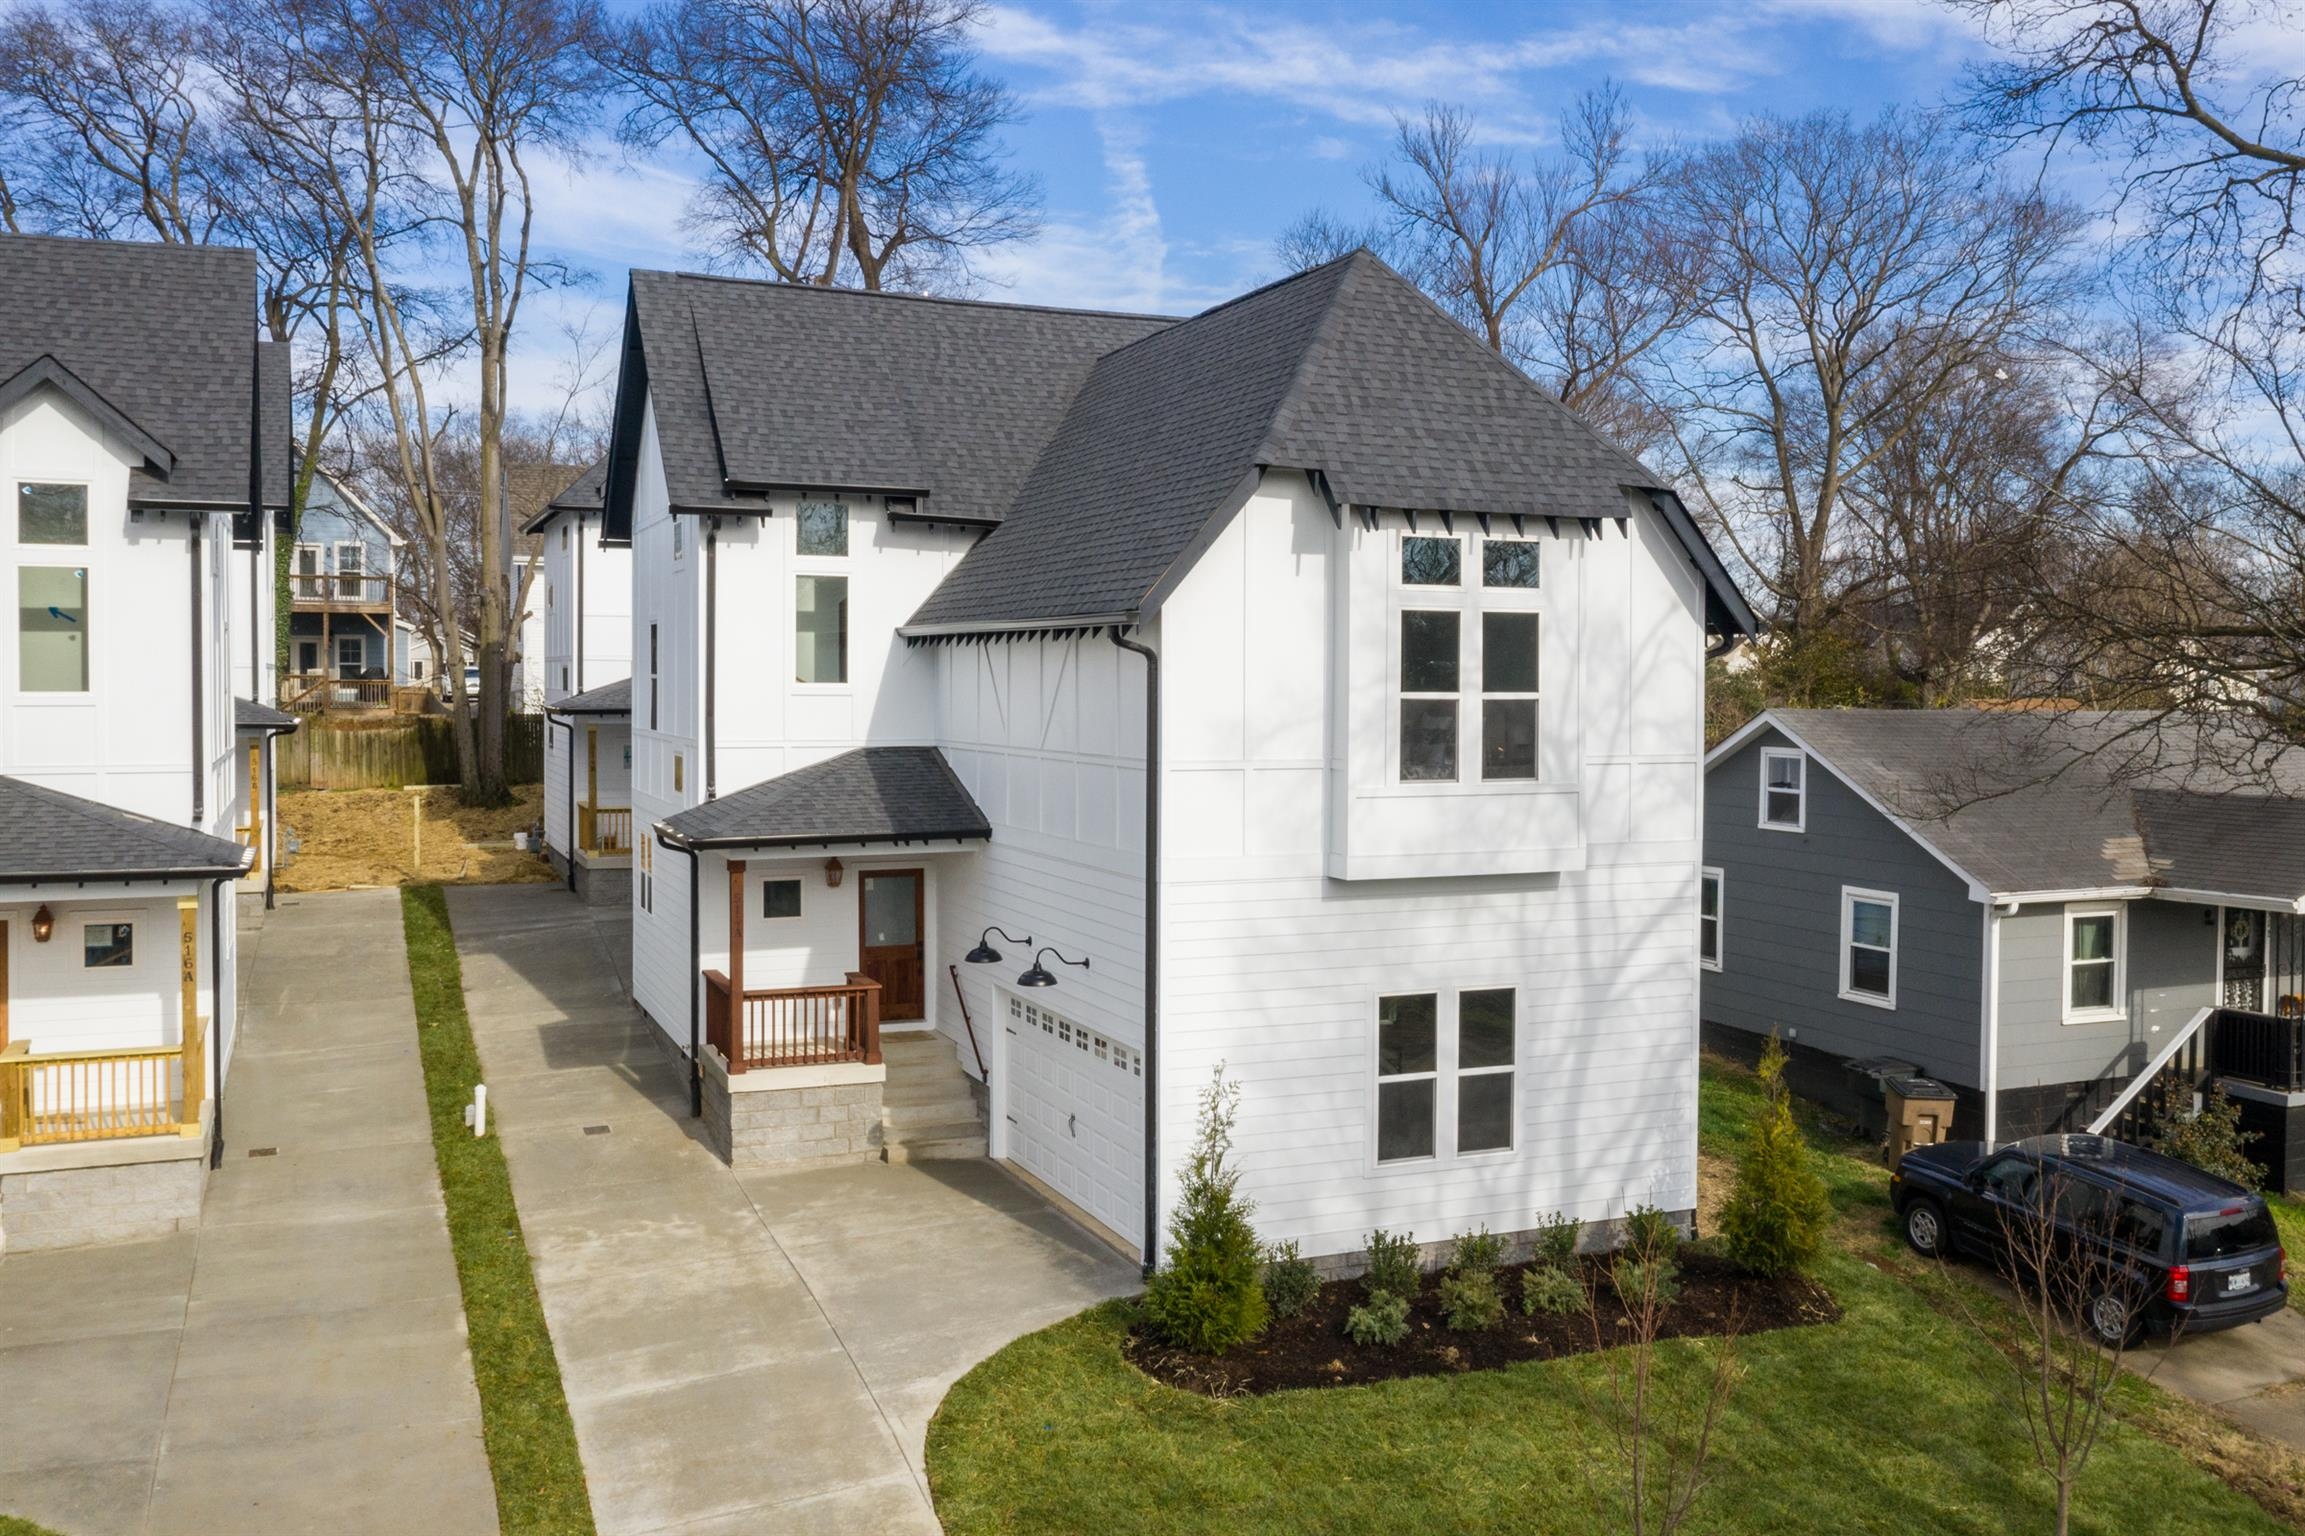 514A Moore Ave, Nashville - Midtown in Davidson County County, TN 37203 Home for Sale